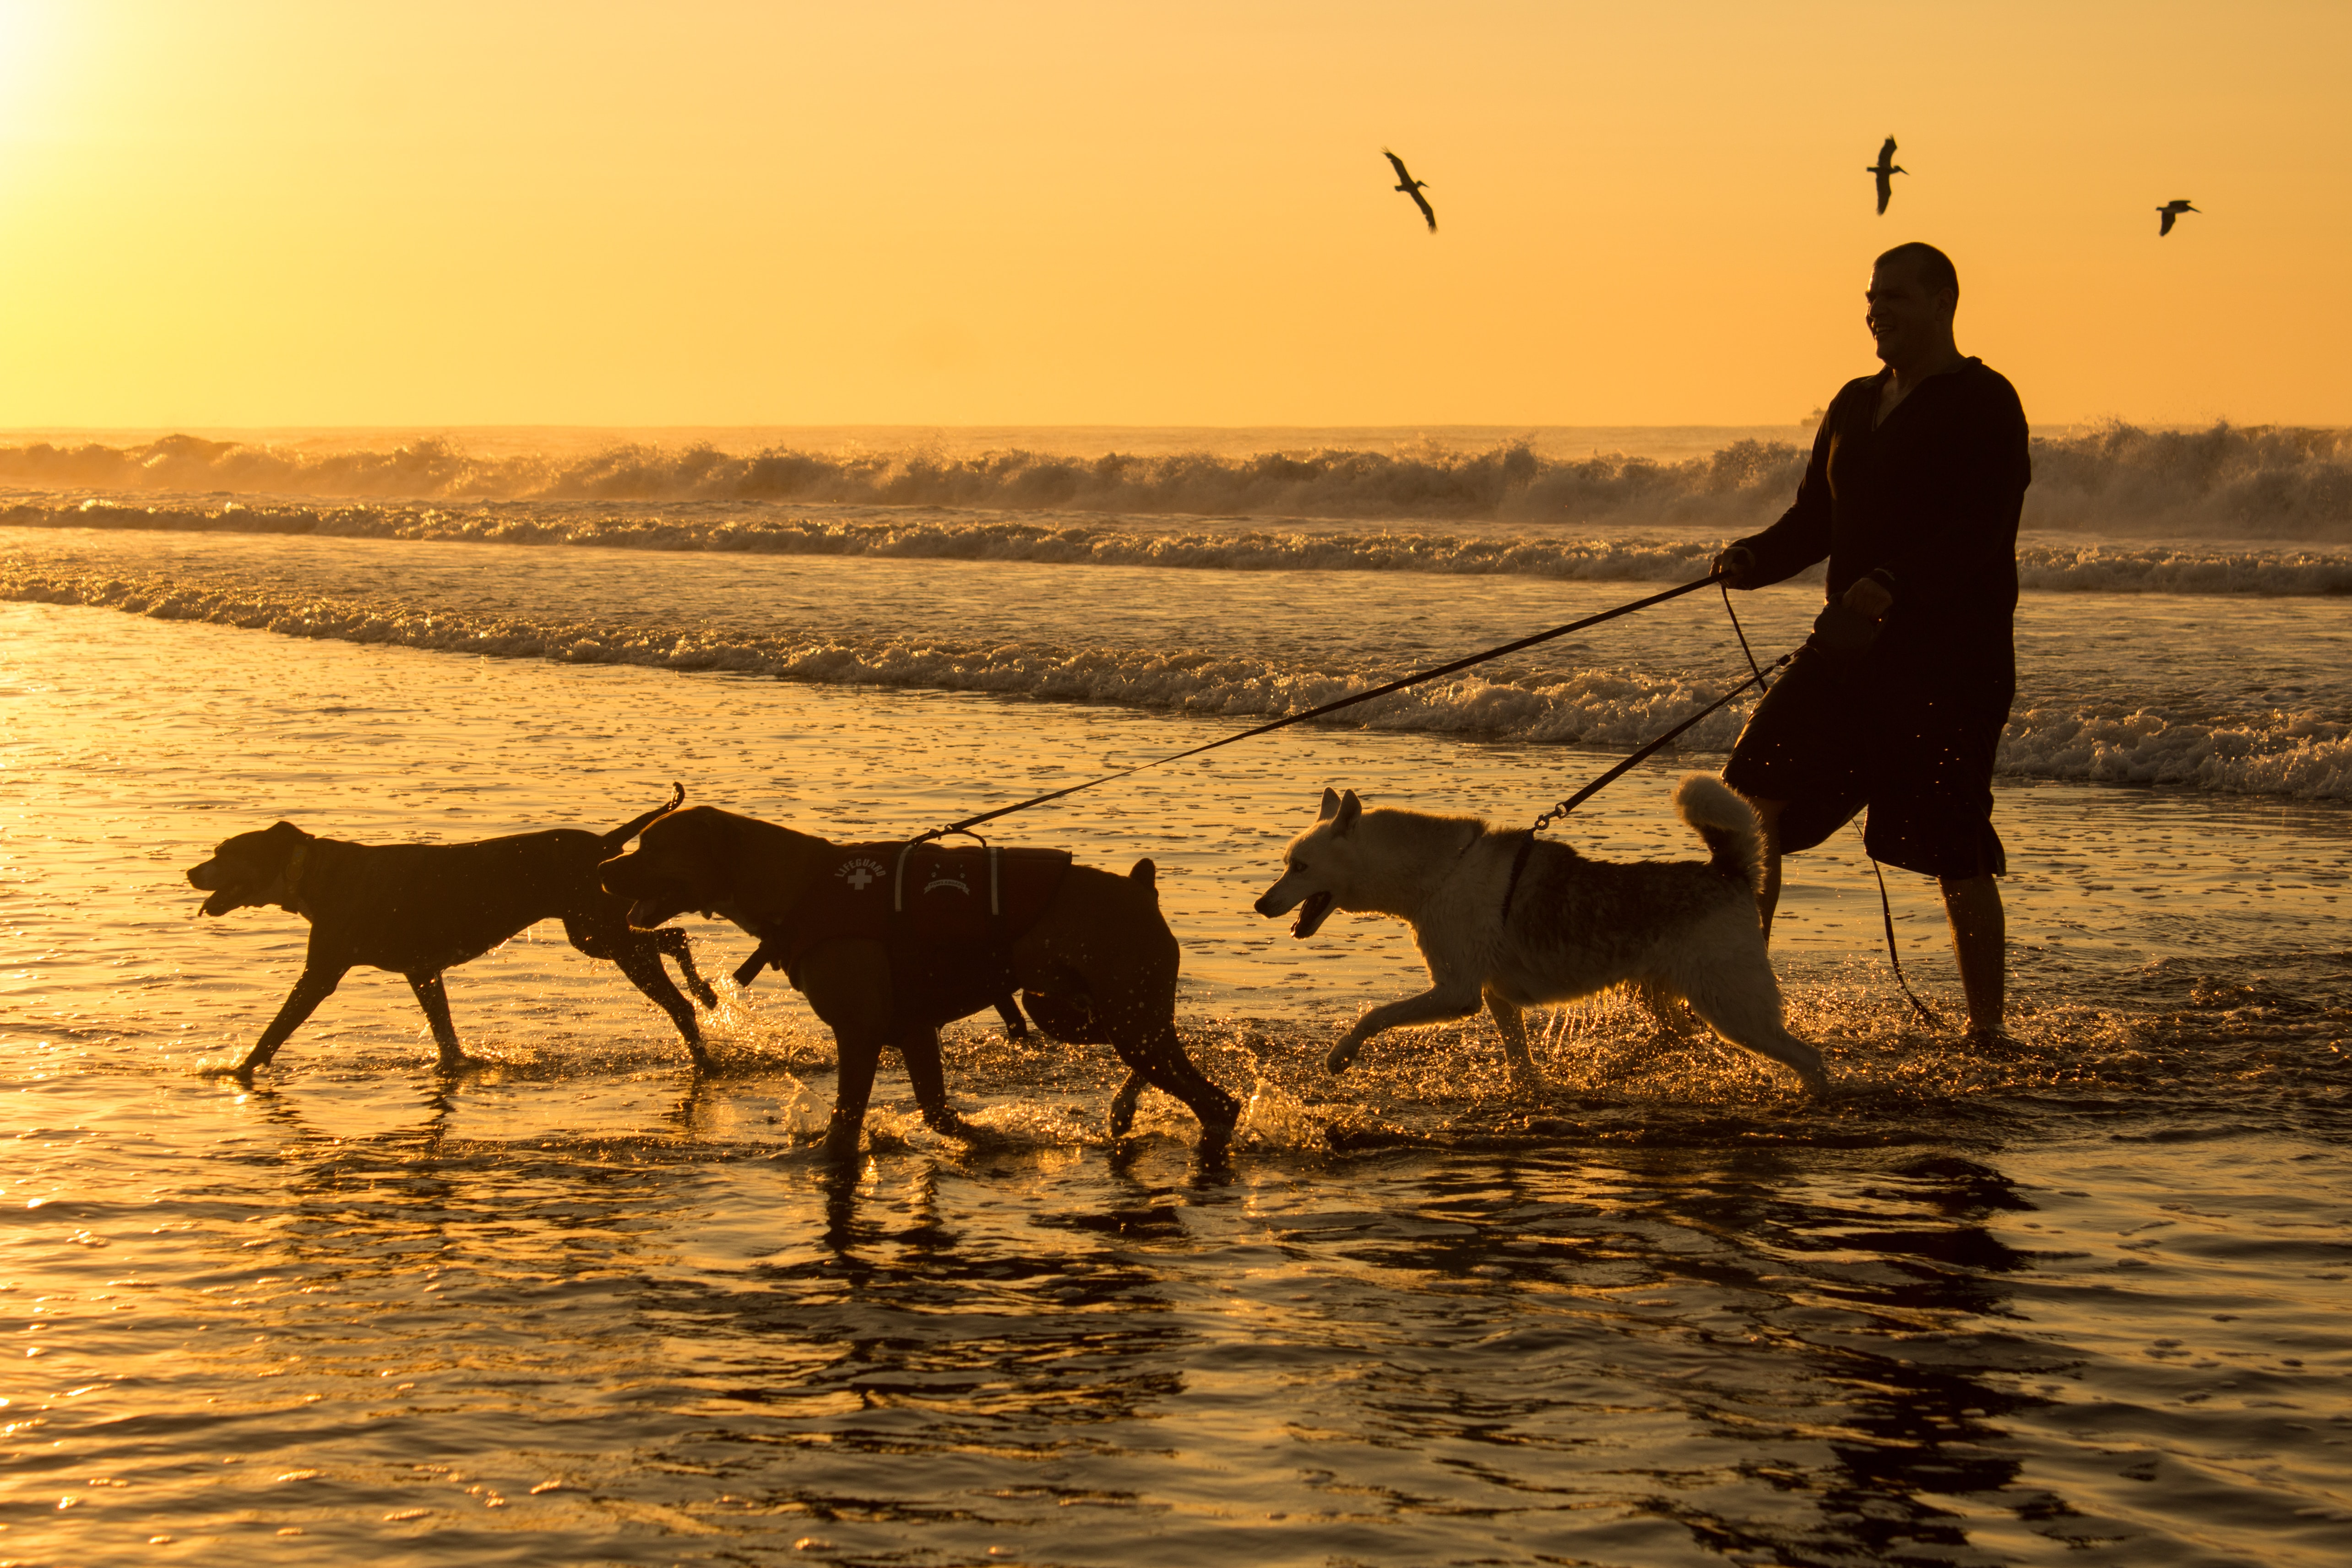 silhouette photography of man holding three dog leashes on body of water